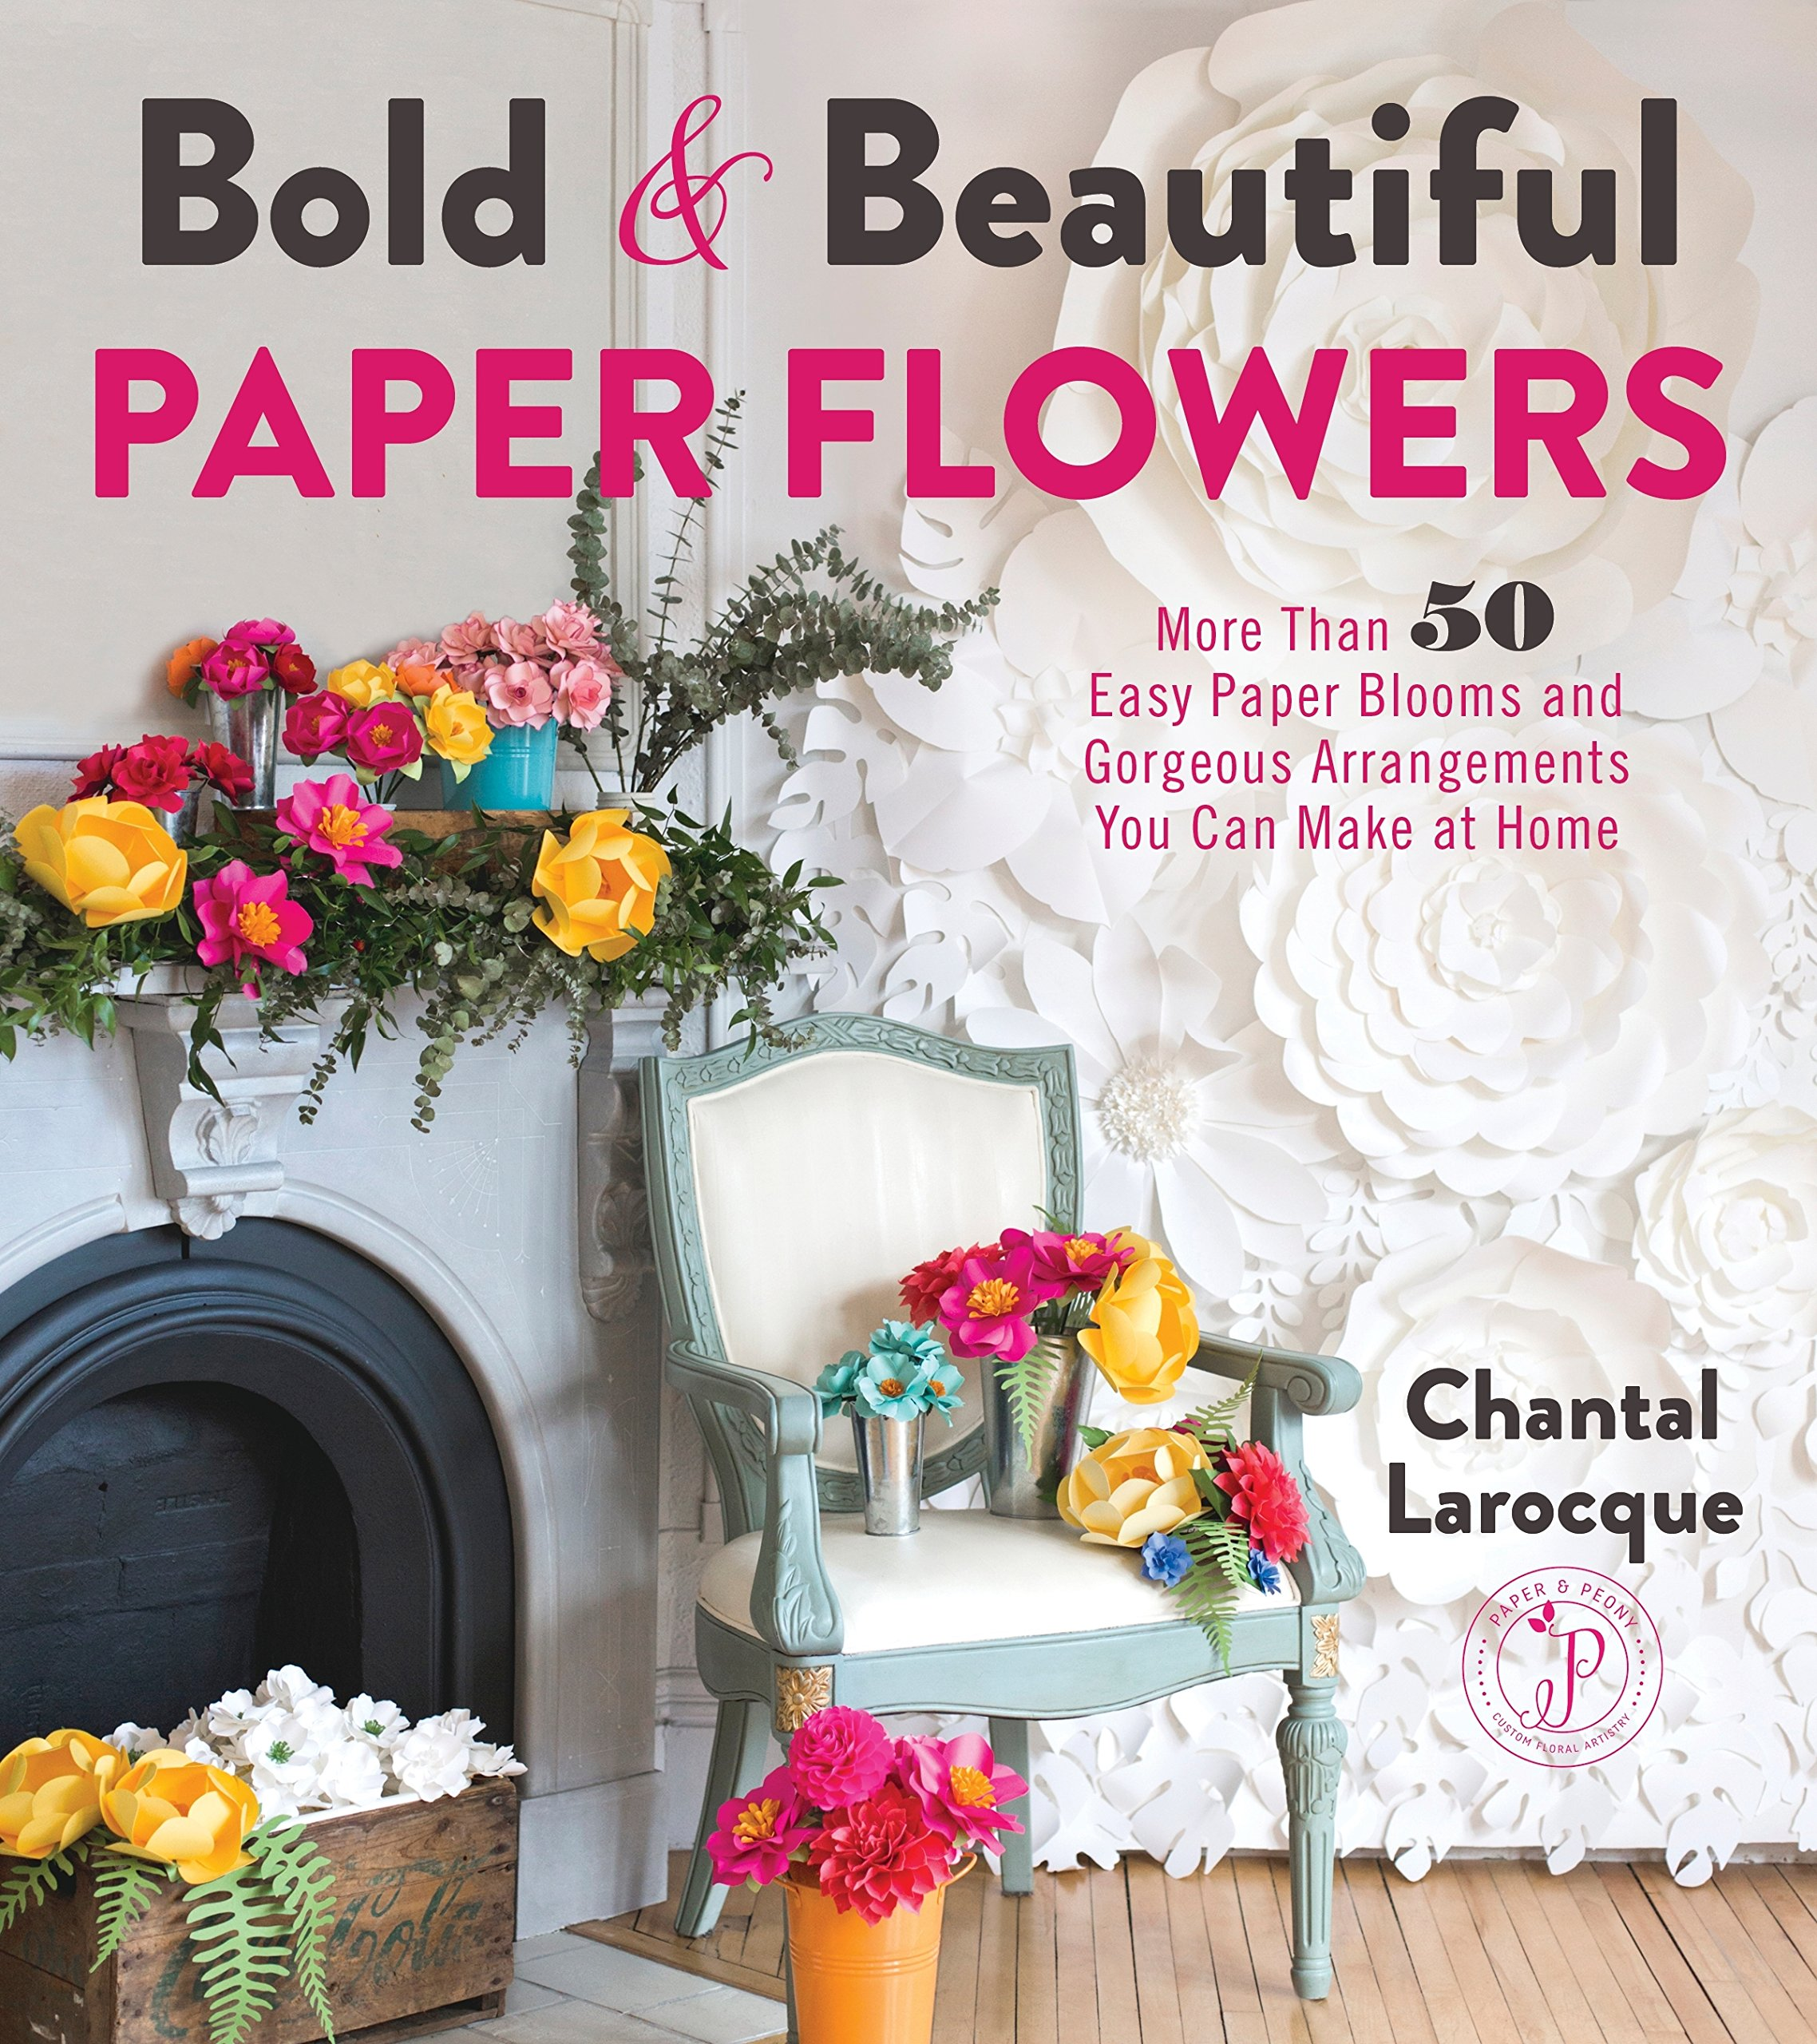 Bold Beautiful Paper Flowers More Than 50 Easy Paper Blooms And